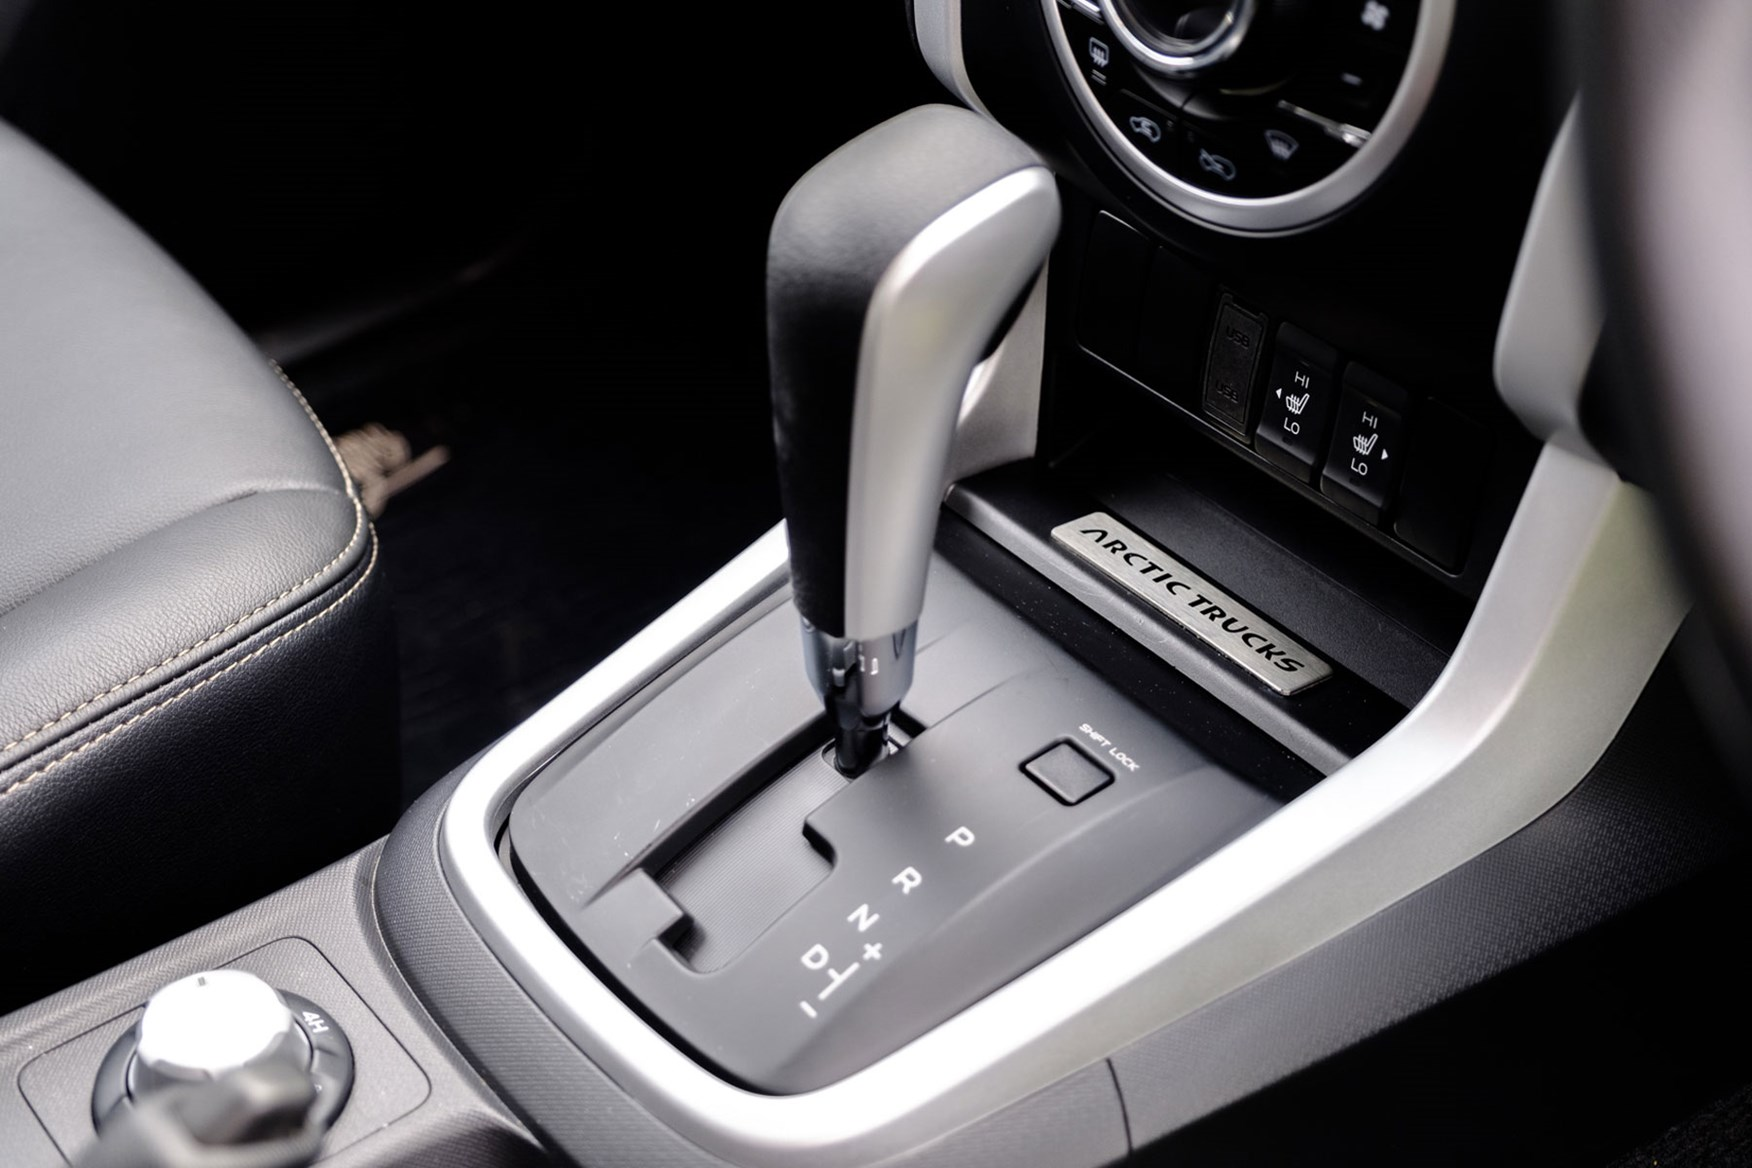 Isuzu D-Max AT35 1.9 review - automatic gearbox